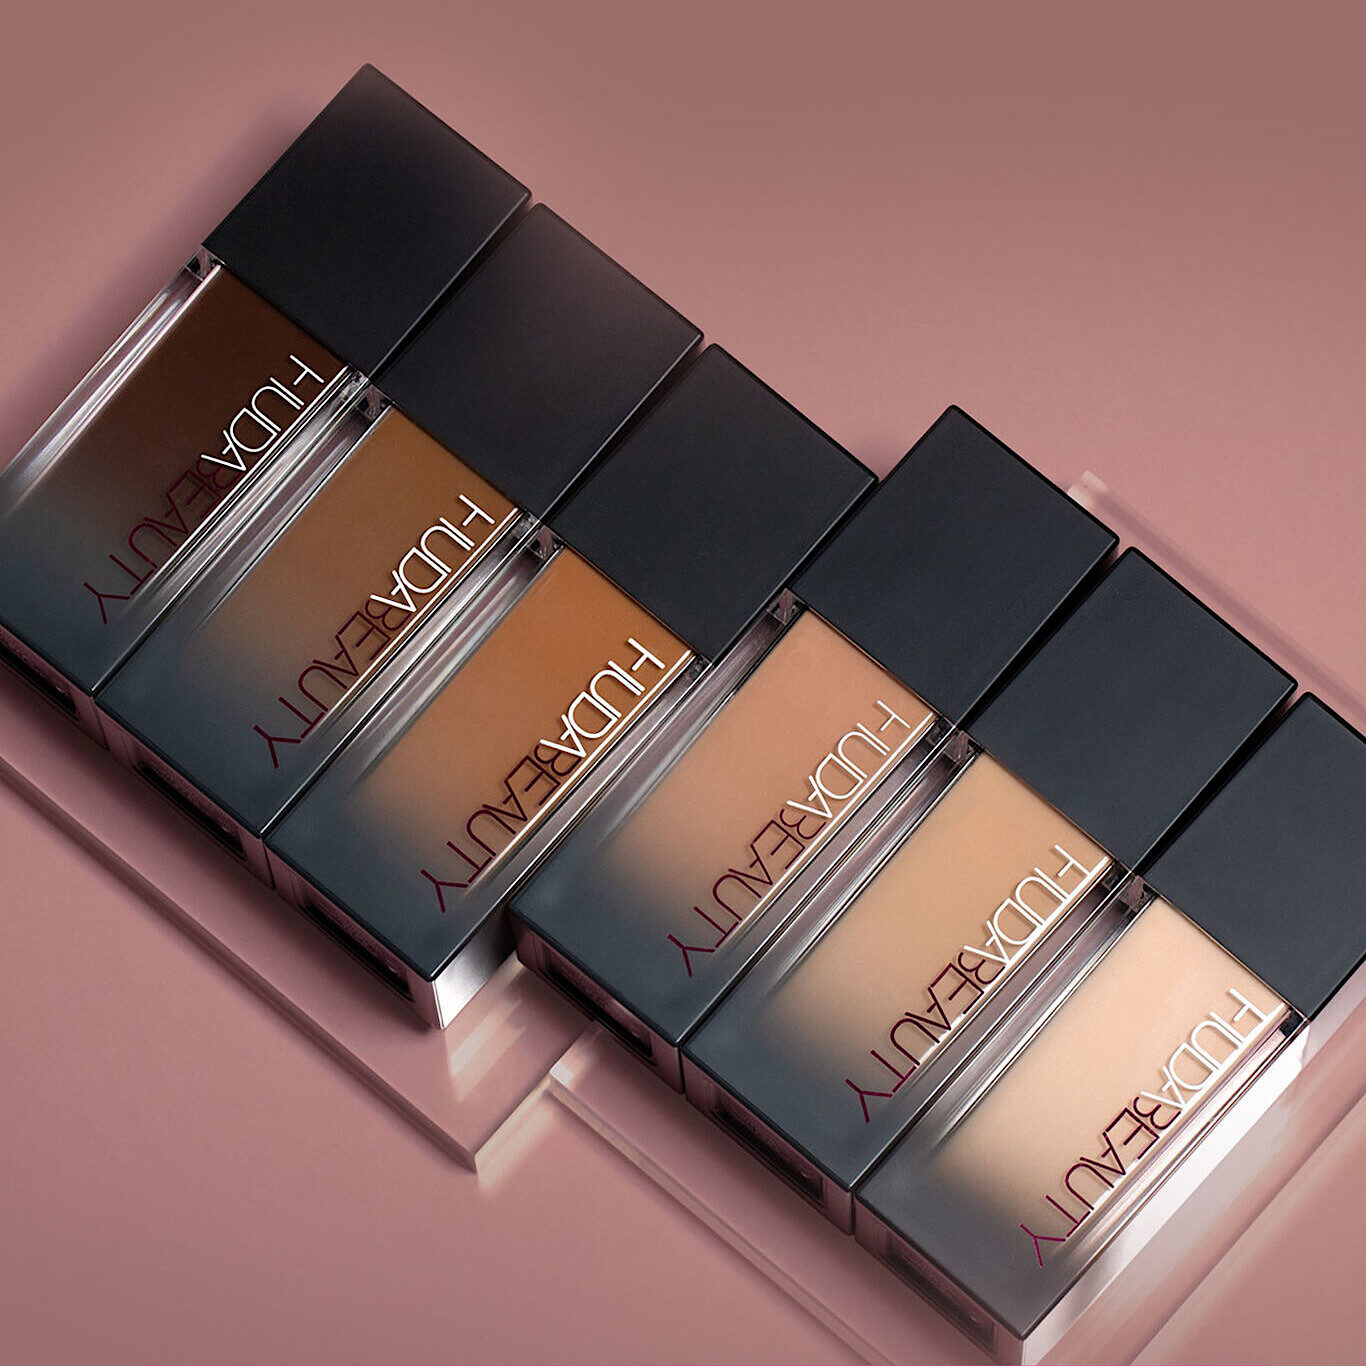 Huda Beauty FauxFilter Luminous Matte Foundation Coming Soon Promo Alt Closer Without Text